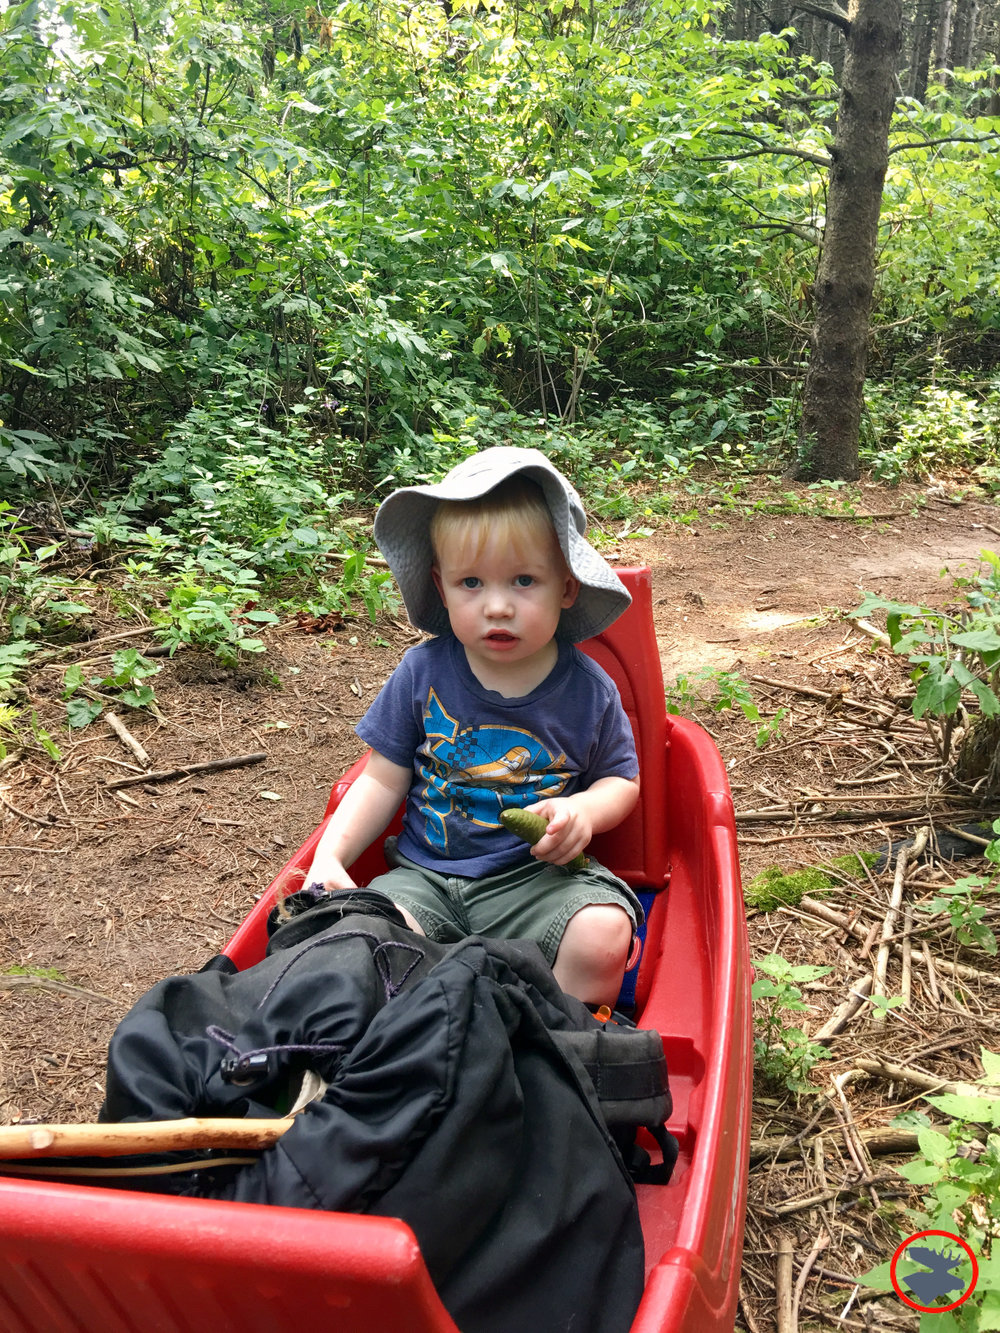 BMP Post_Expedition Log_Backpacking with Toddlers_Wagon1(W)_June 2018.jpg